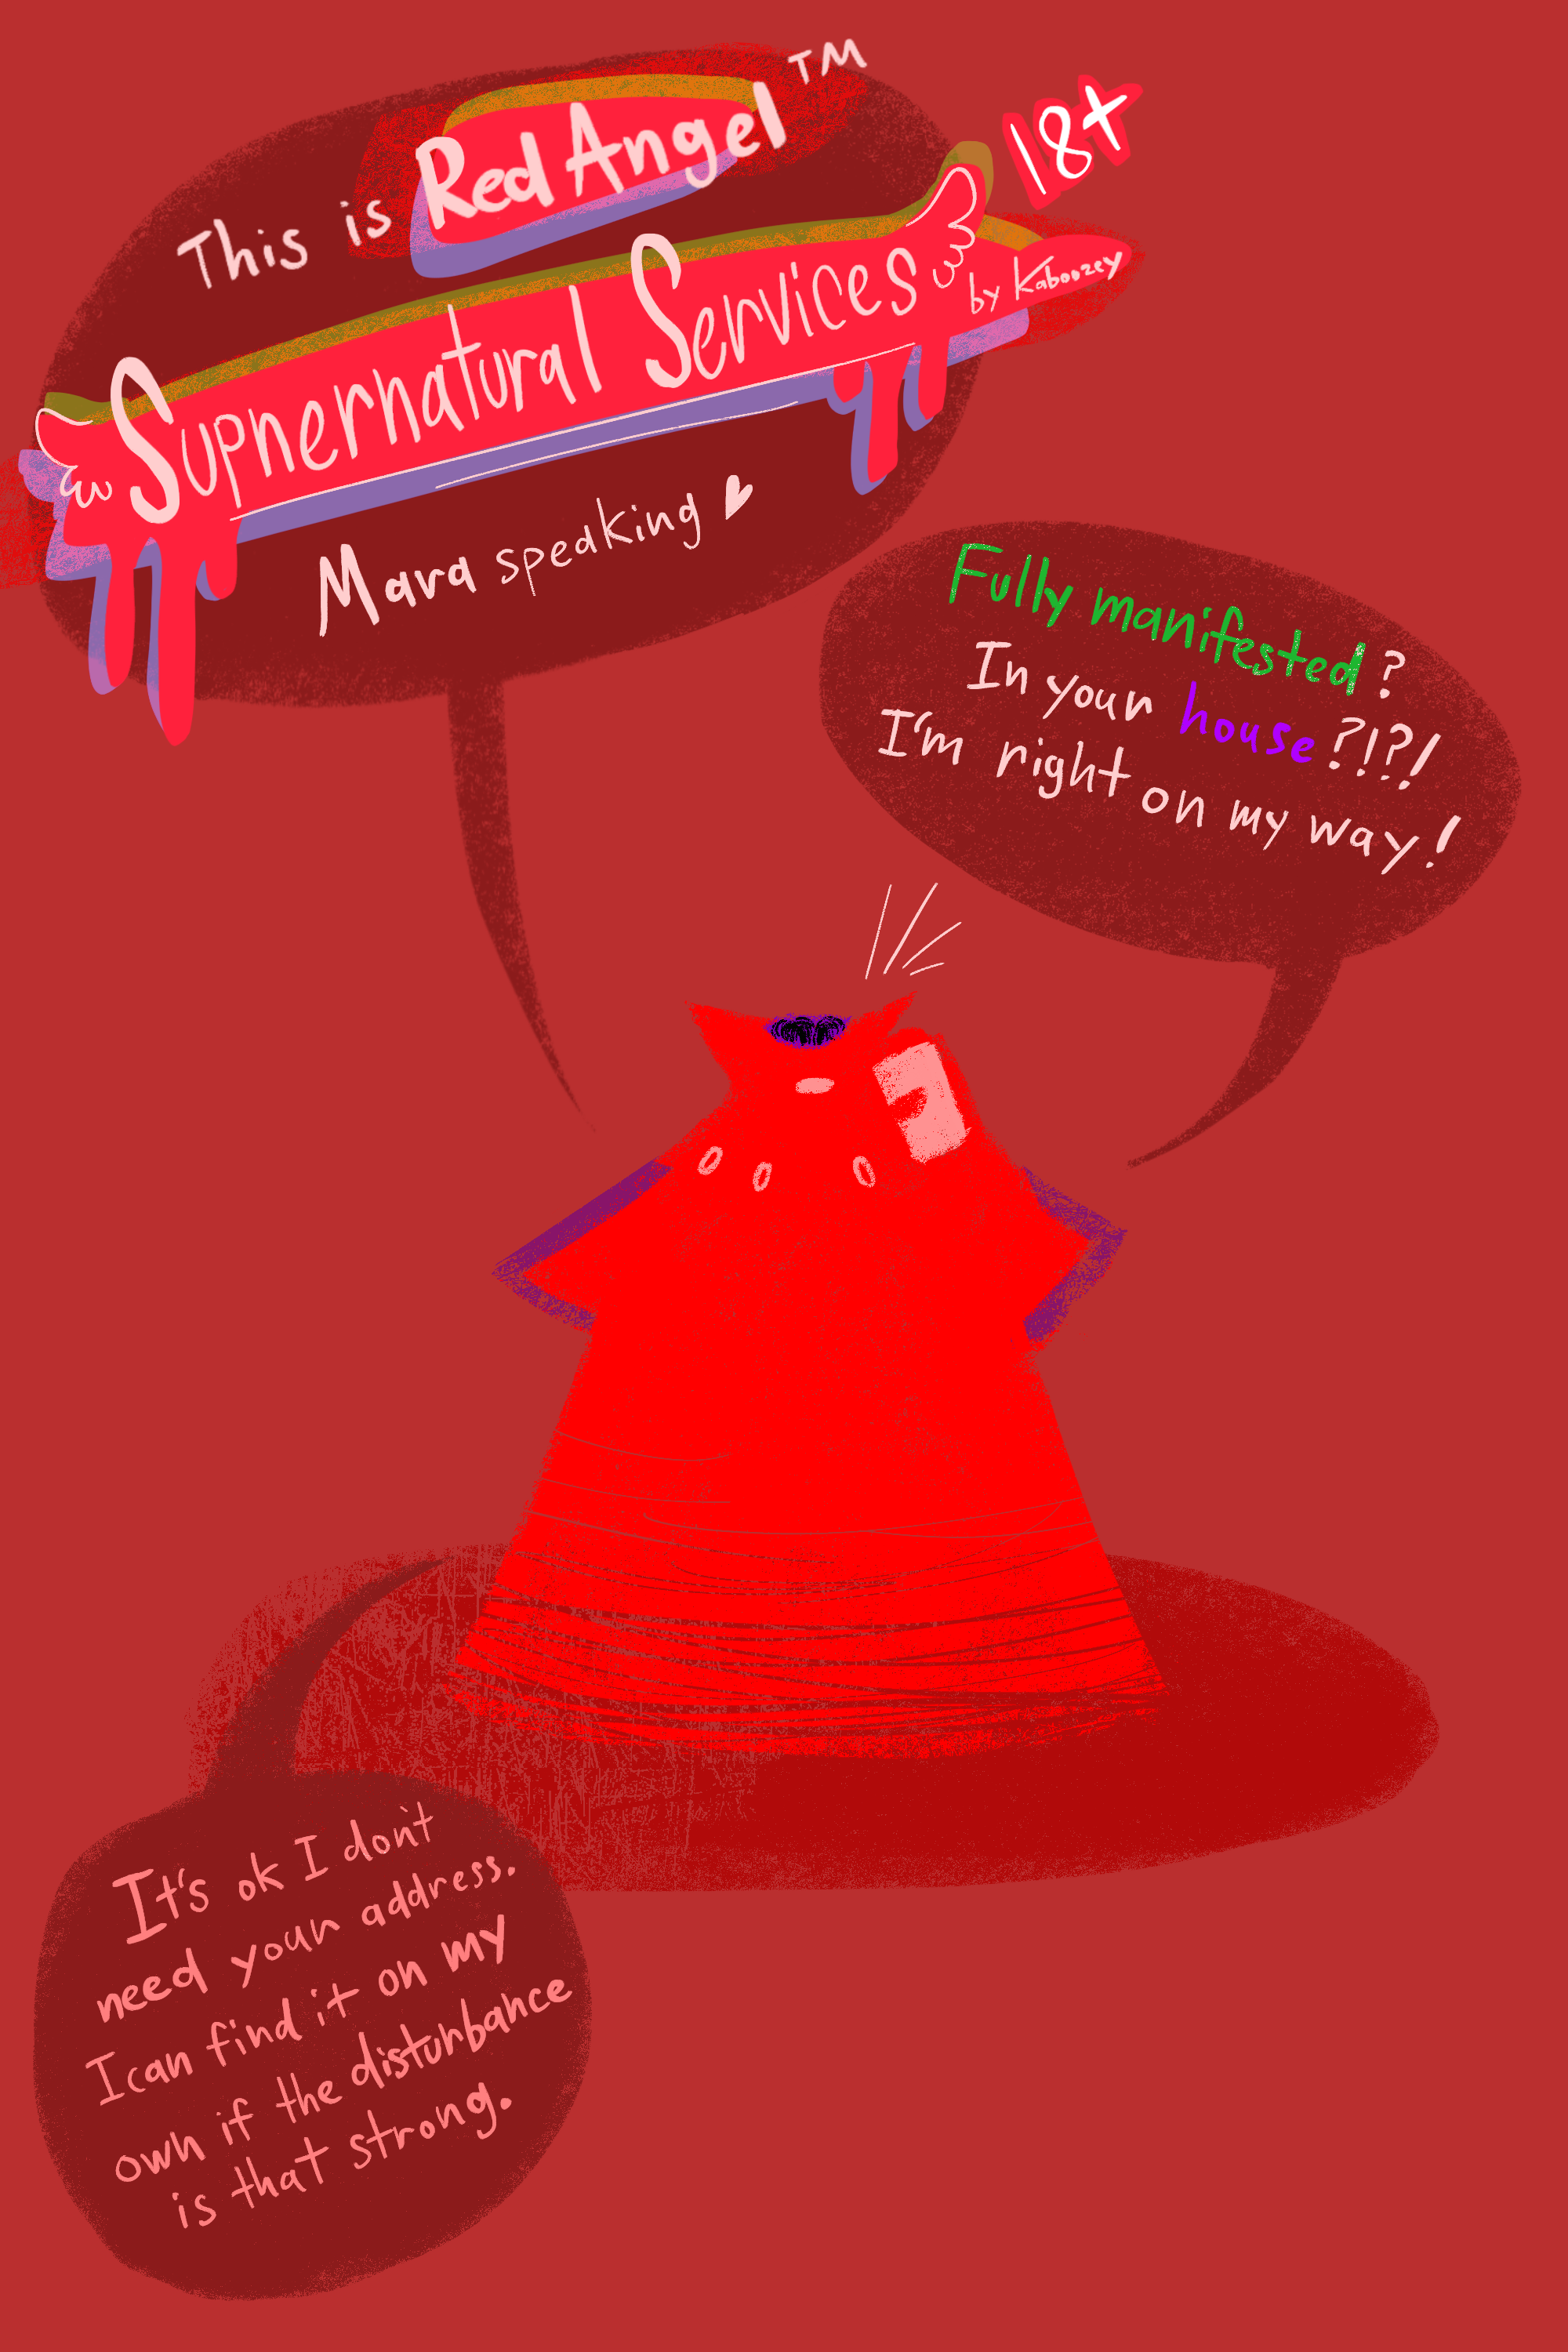 [Comic] Red Angel Supernatural Services (1/6)